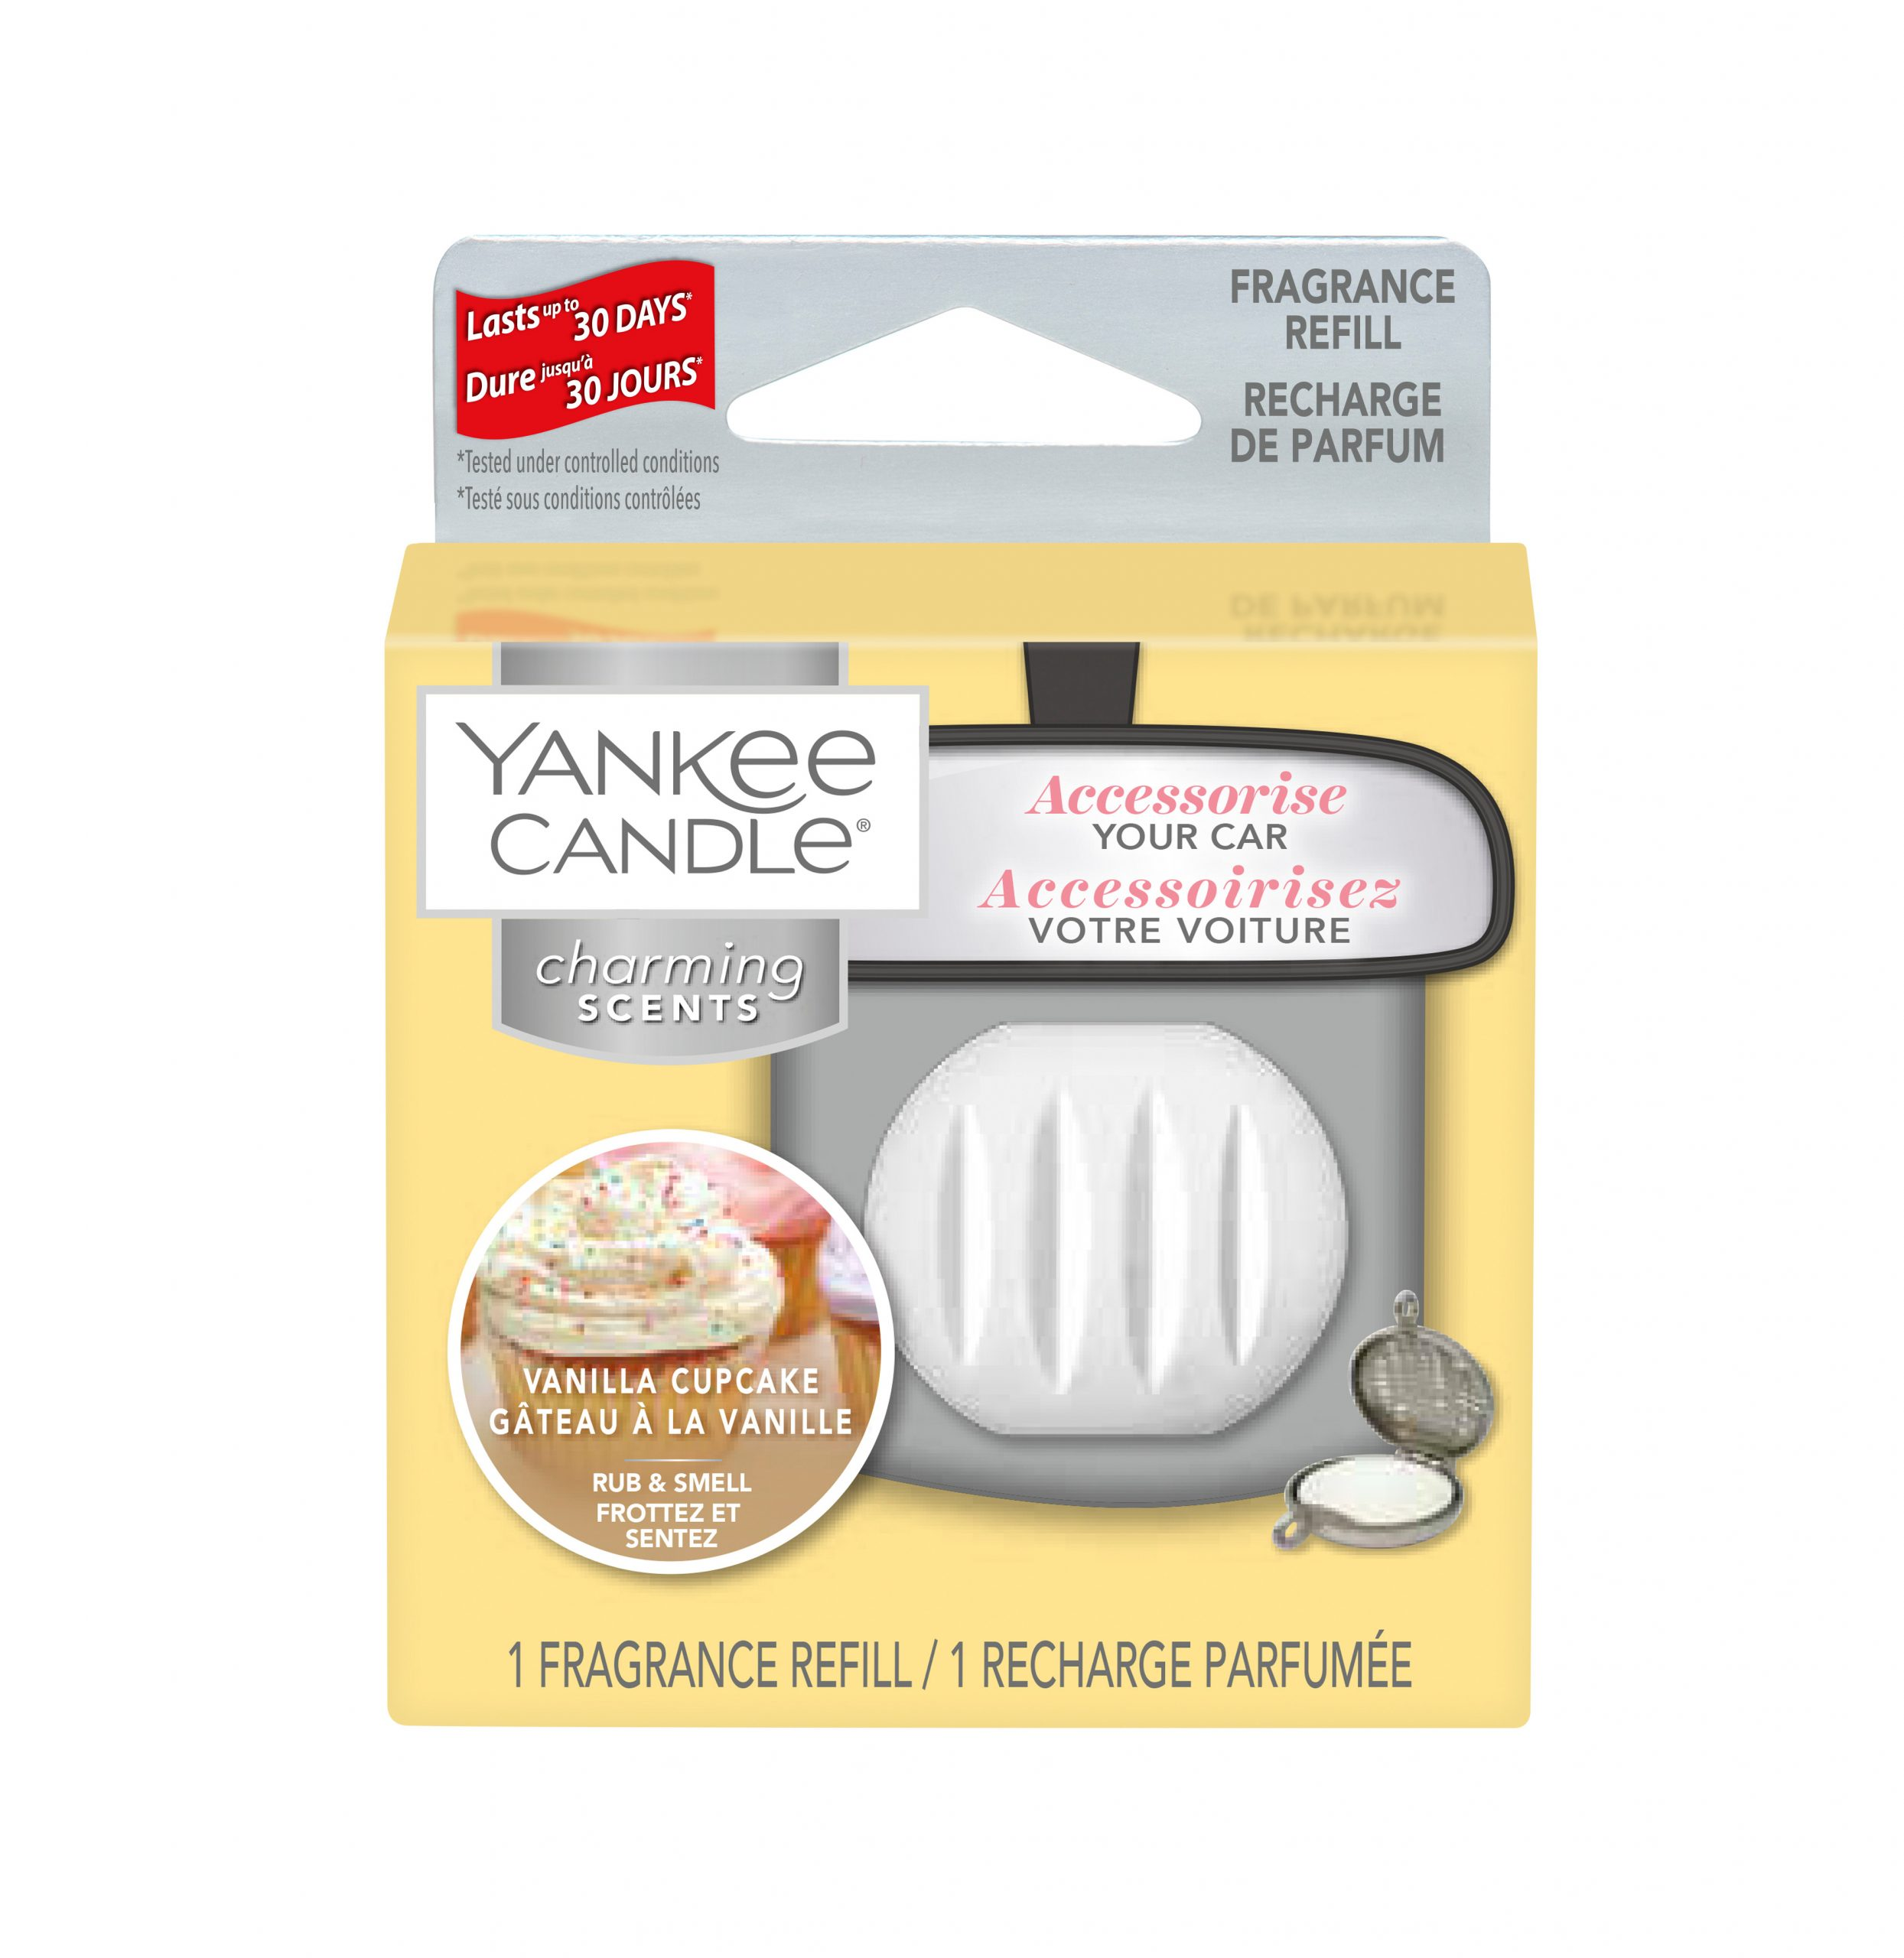 Charming Scents Fragrance Refill - Vanilla Cupcake